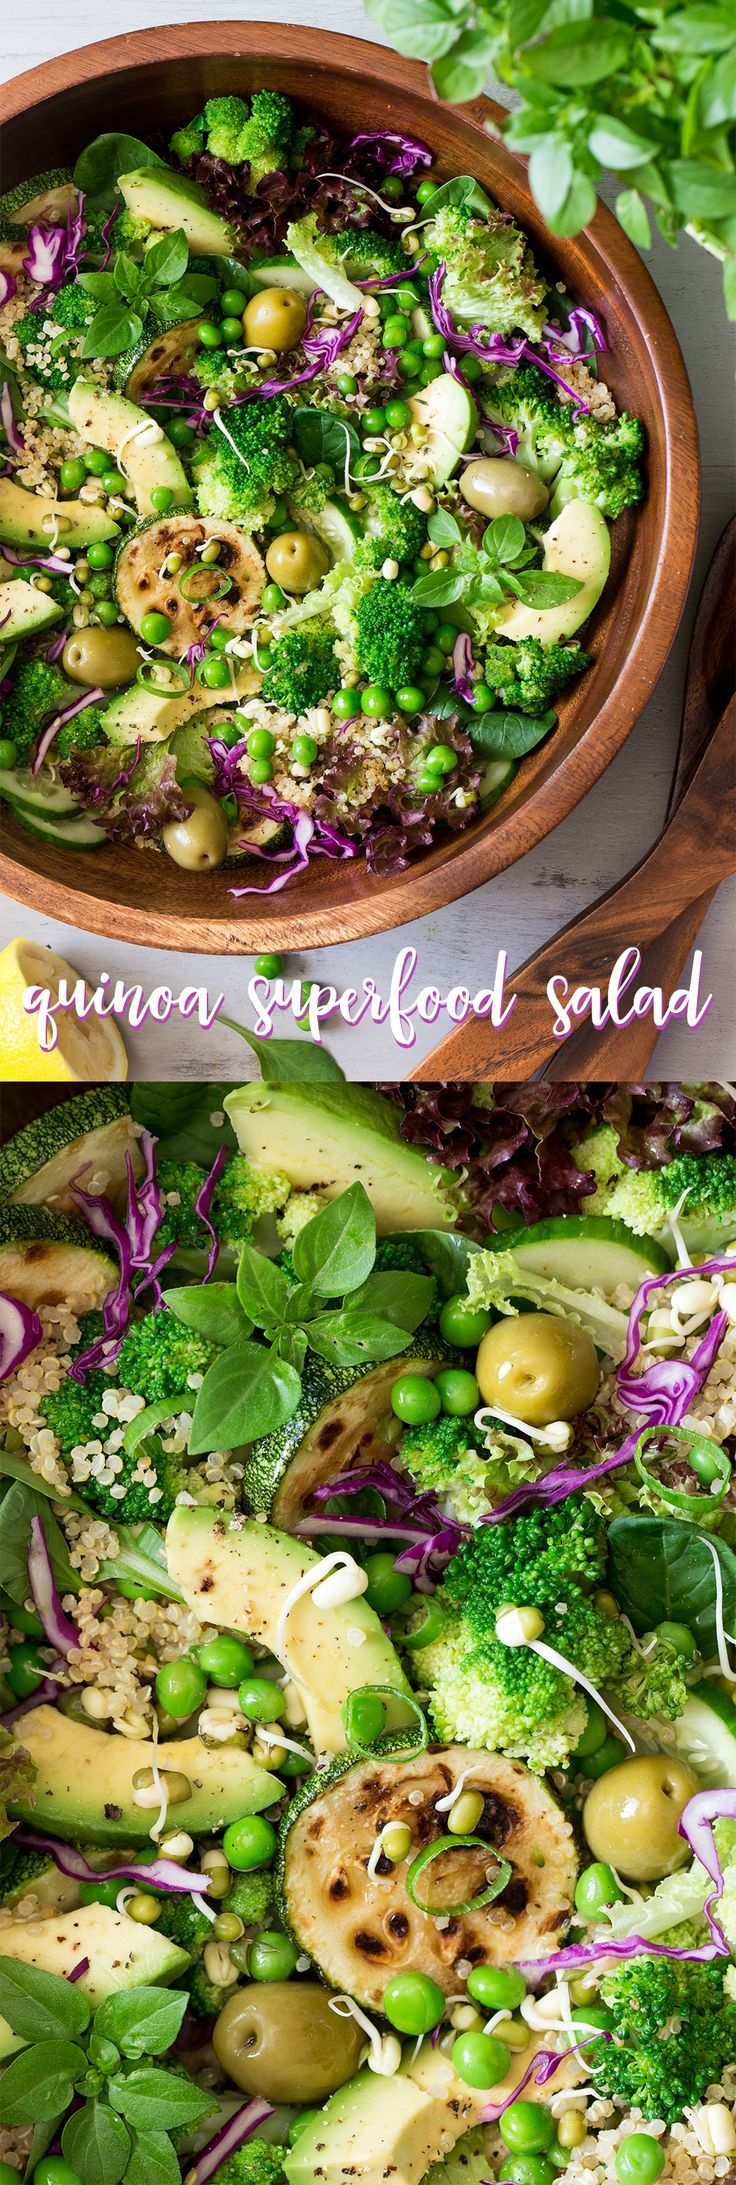 Quinoa superfood salad                                                                                                                                                                                 More